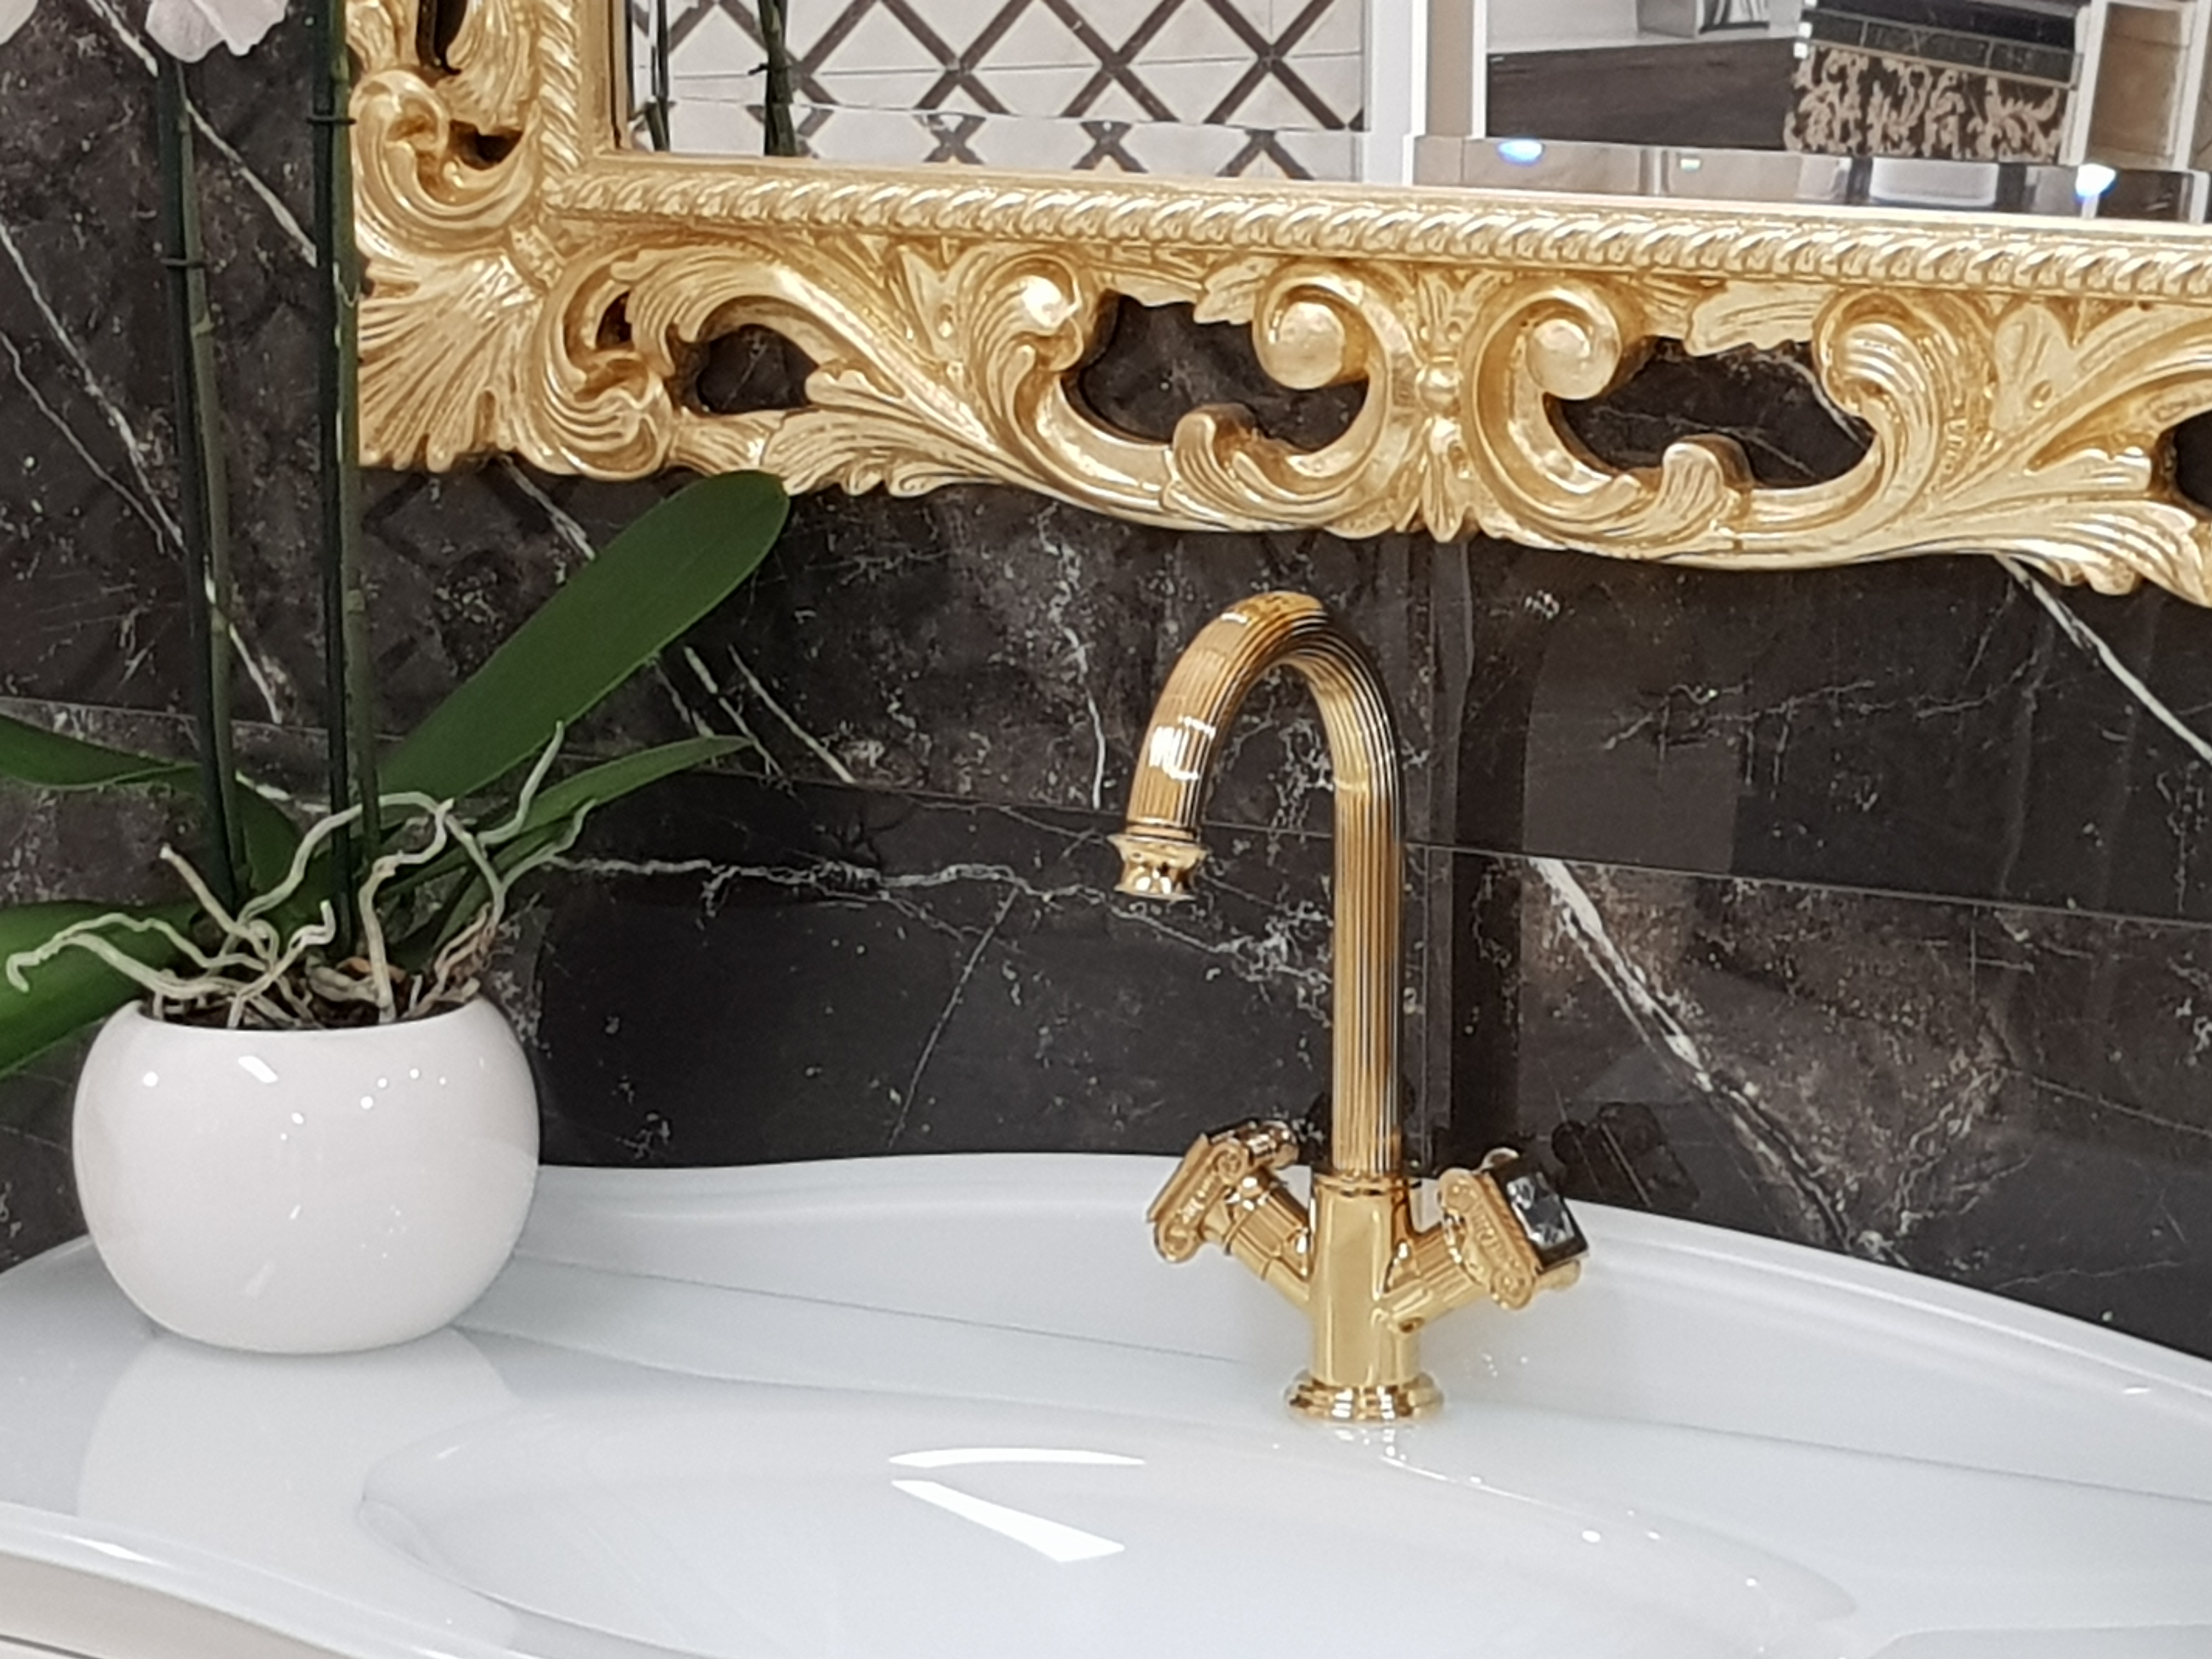 Versace-Olympia lavabo2